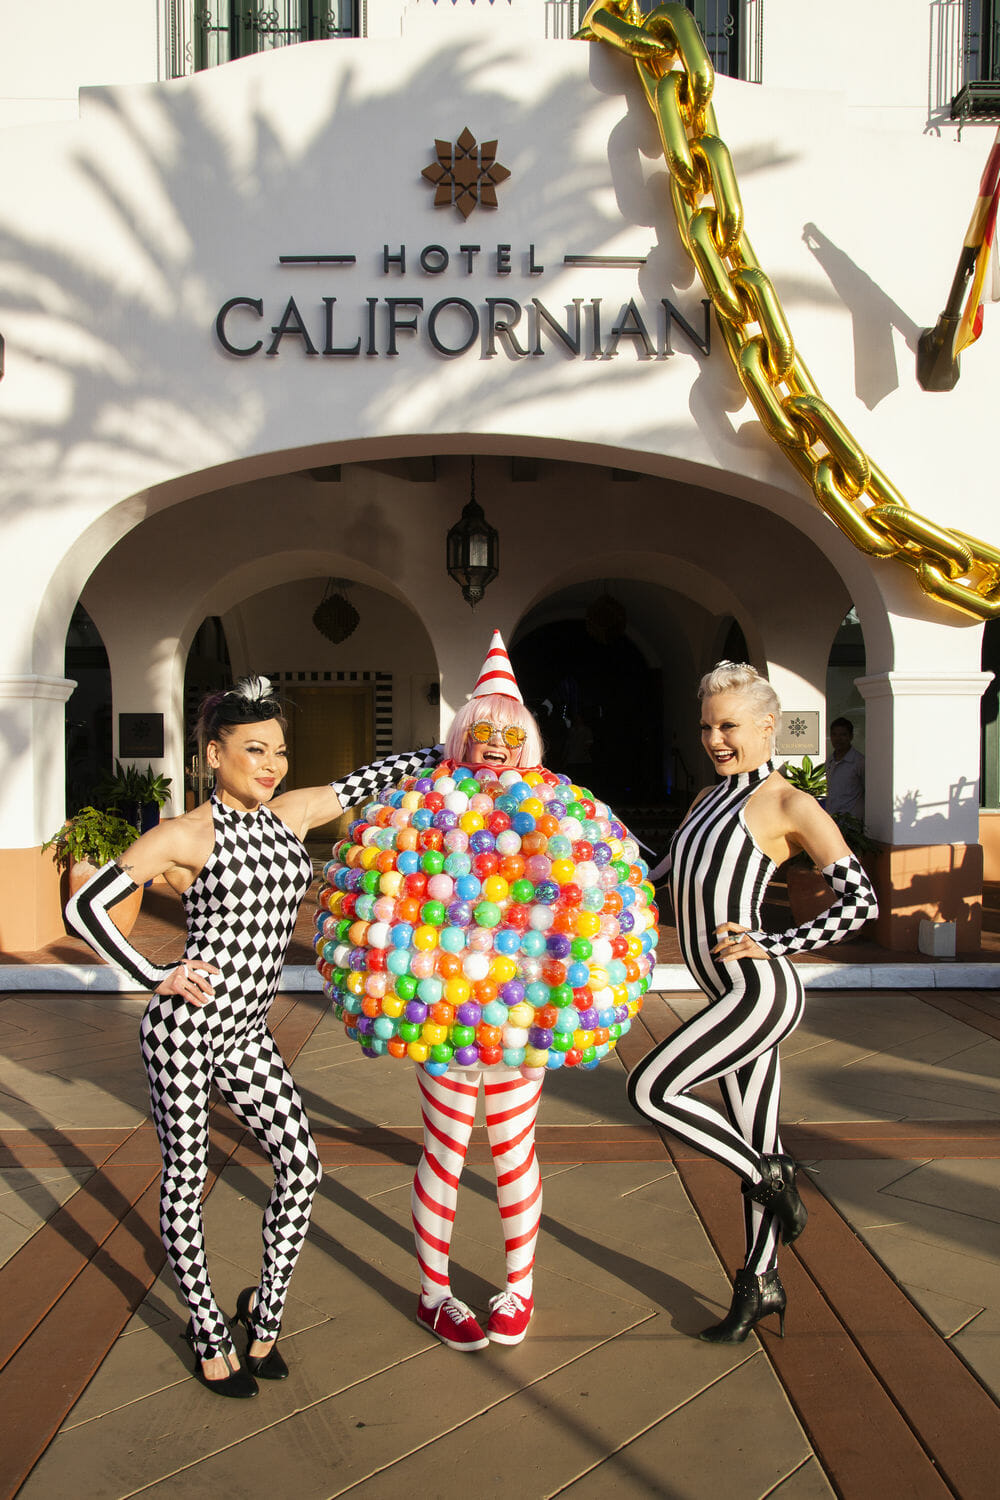 event-photographer-santa-barbara-hotelcalifornian_144